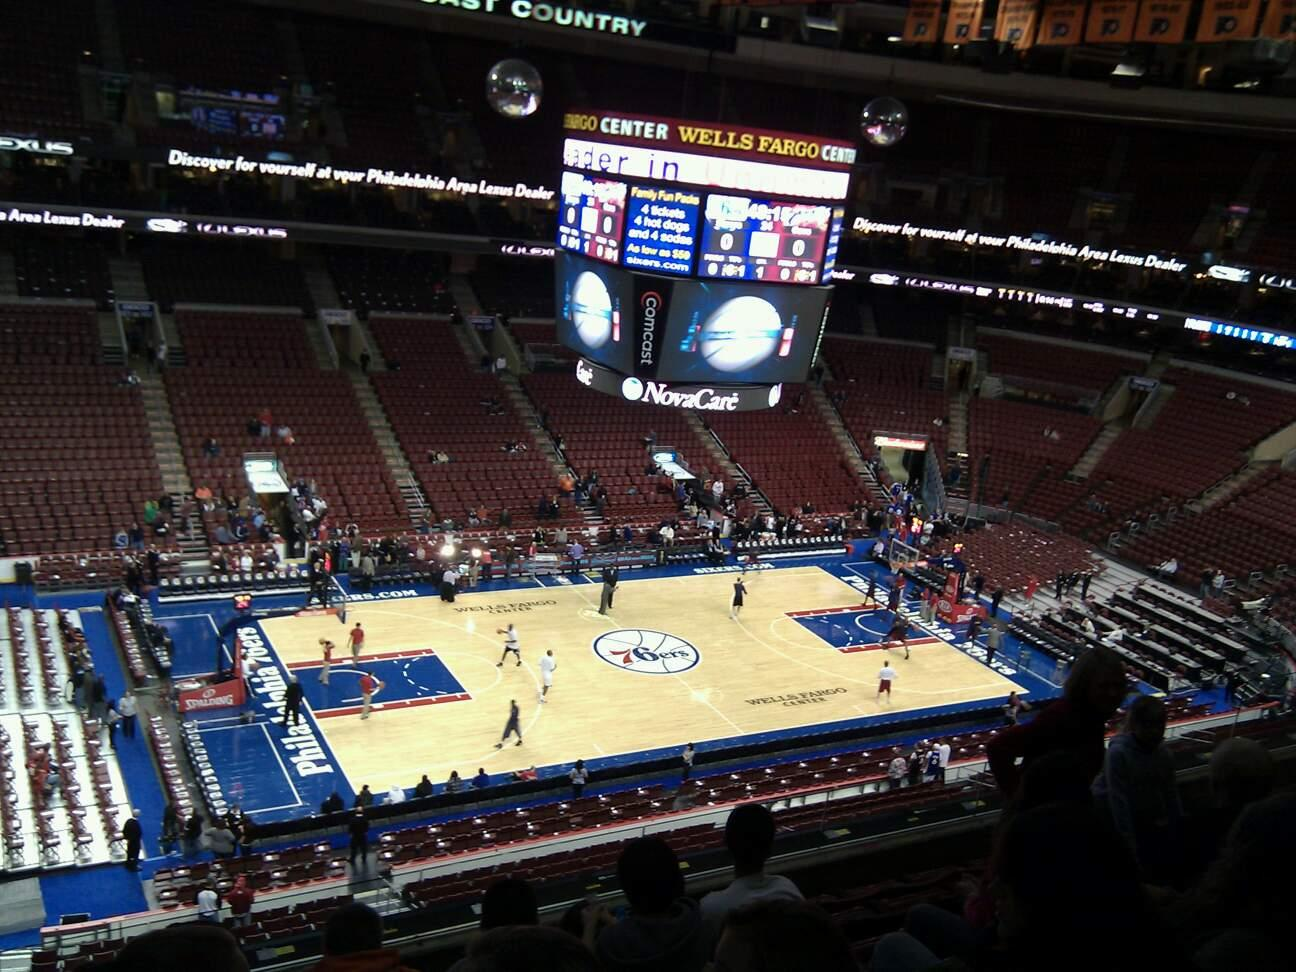 Wells Fargo Center Section 211 Row 7 Seat 3